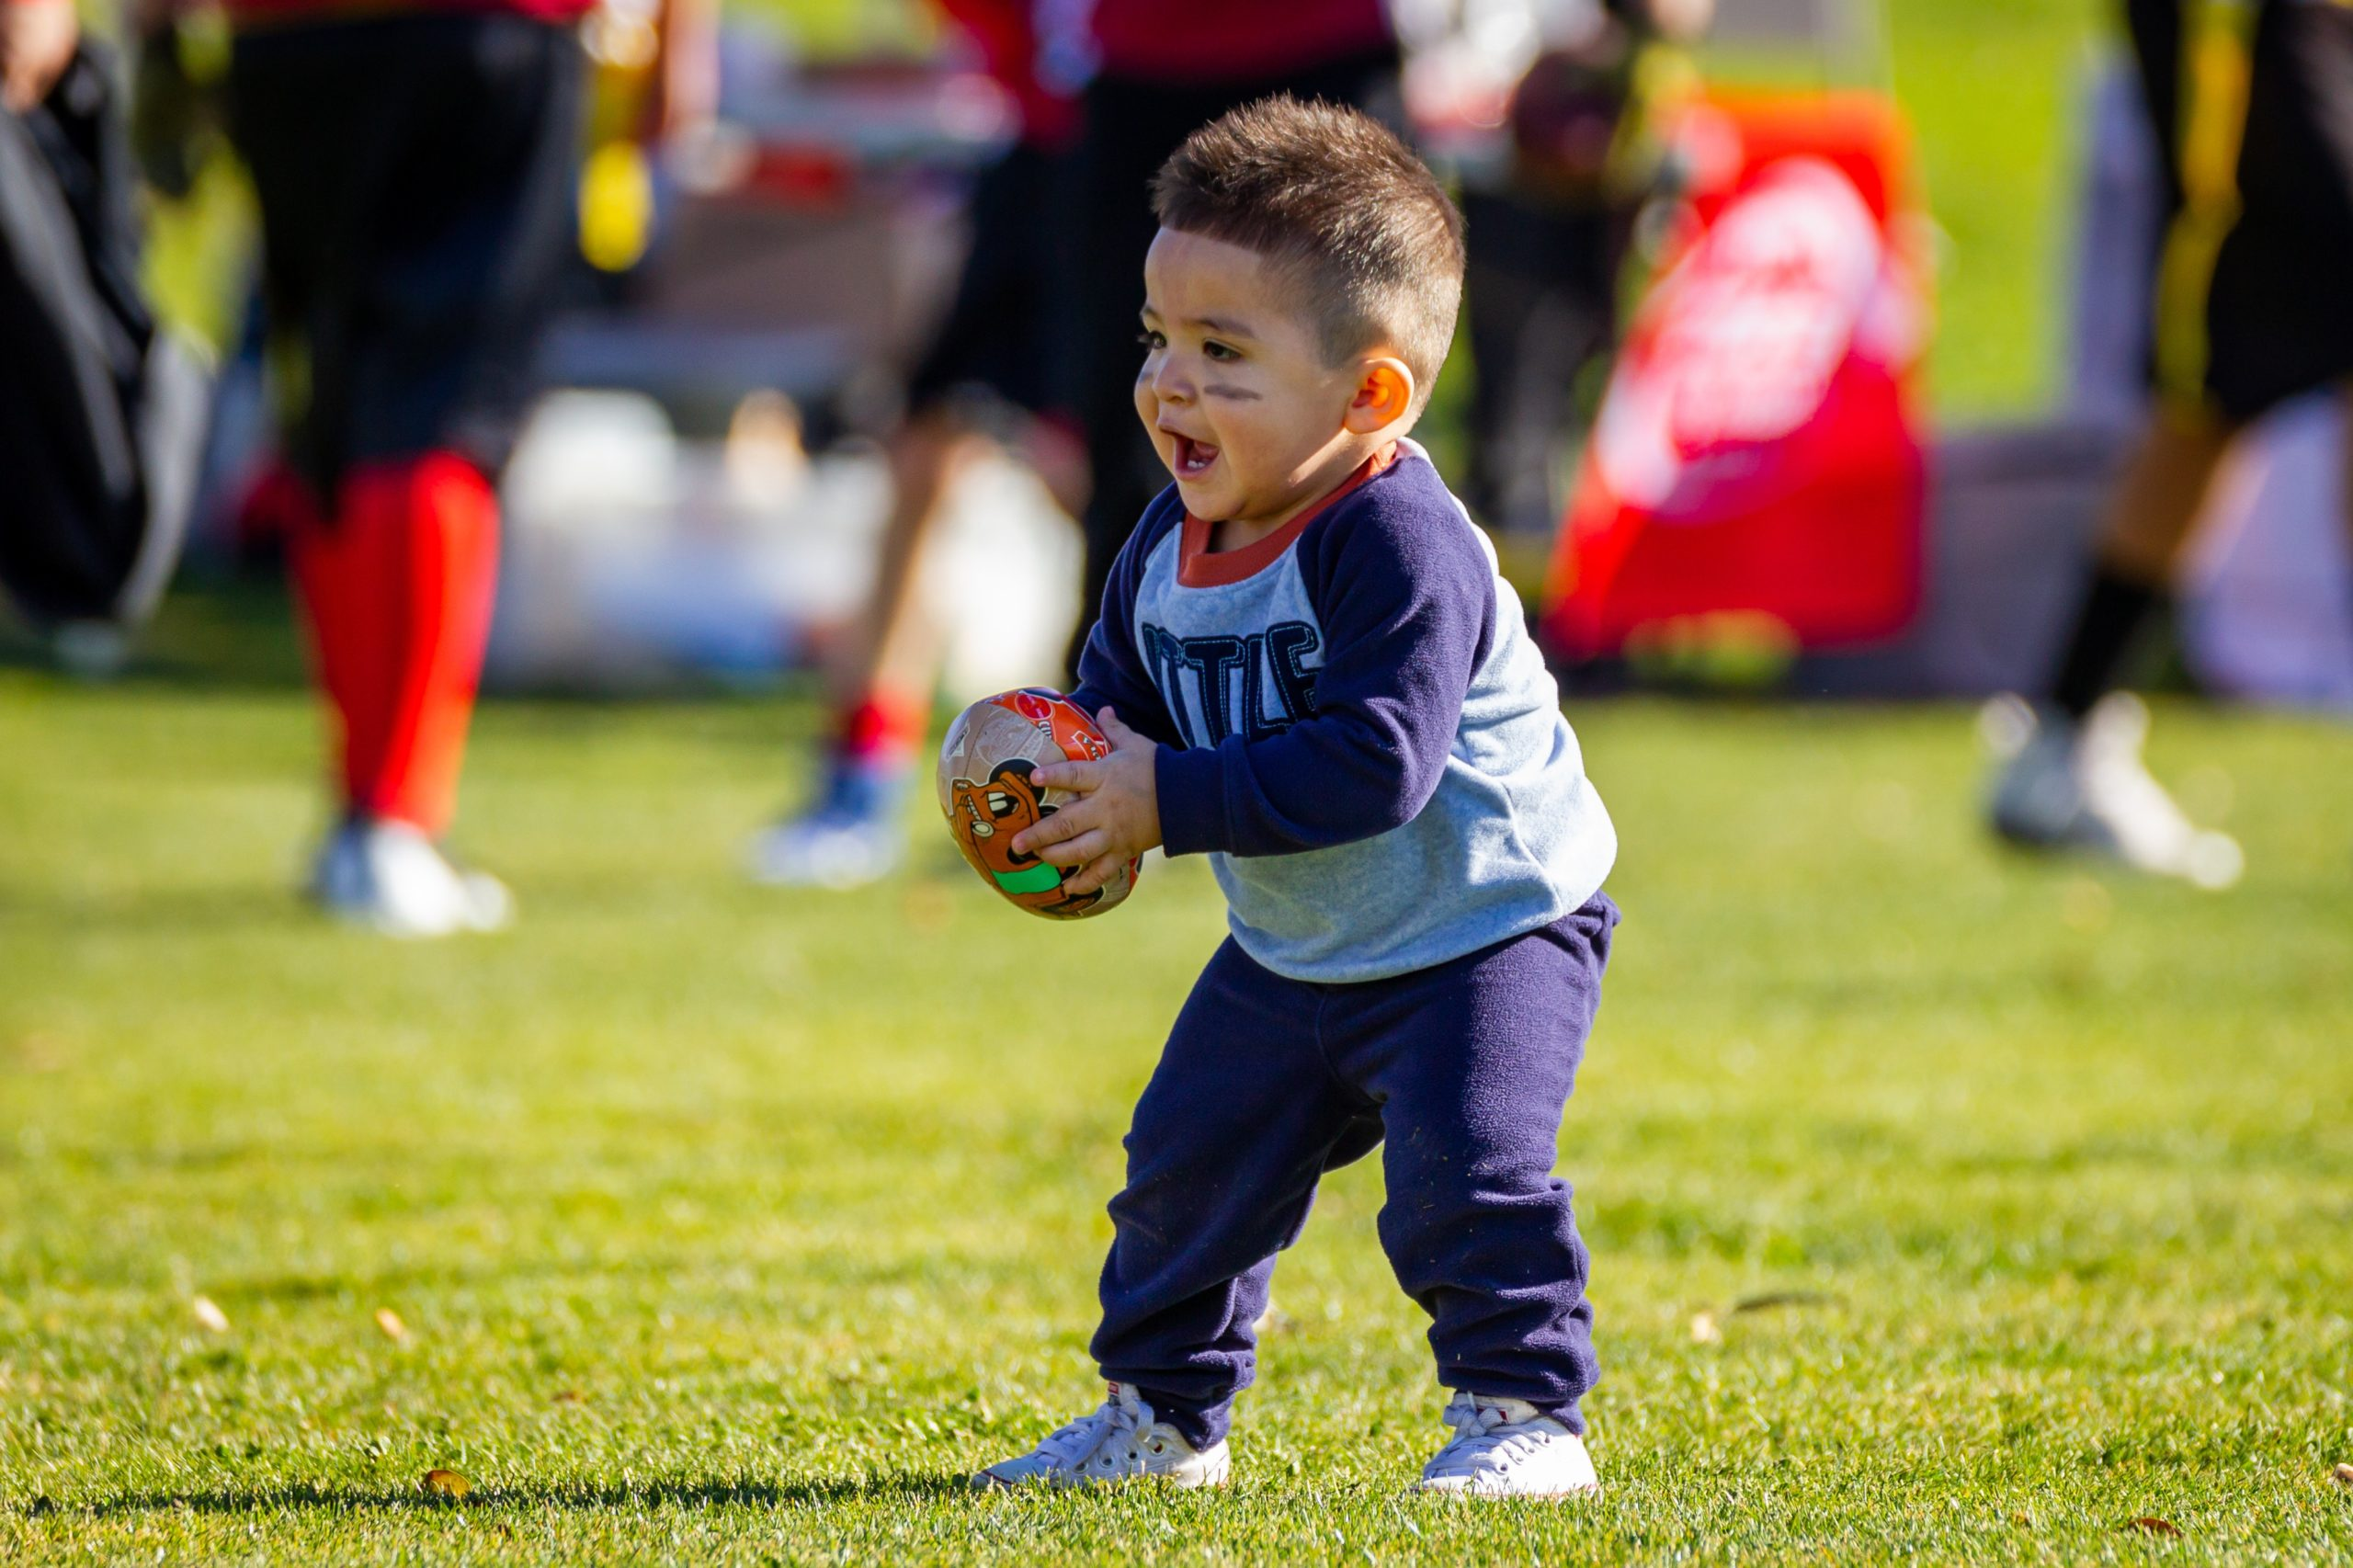 A young boy holding a football ball on a field